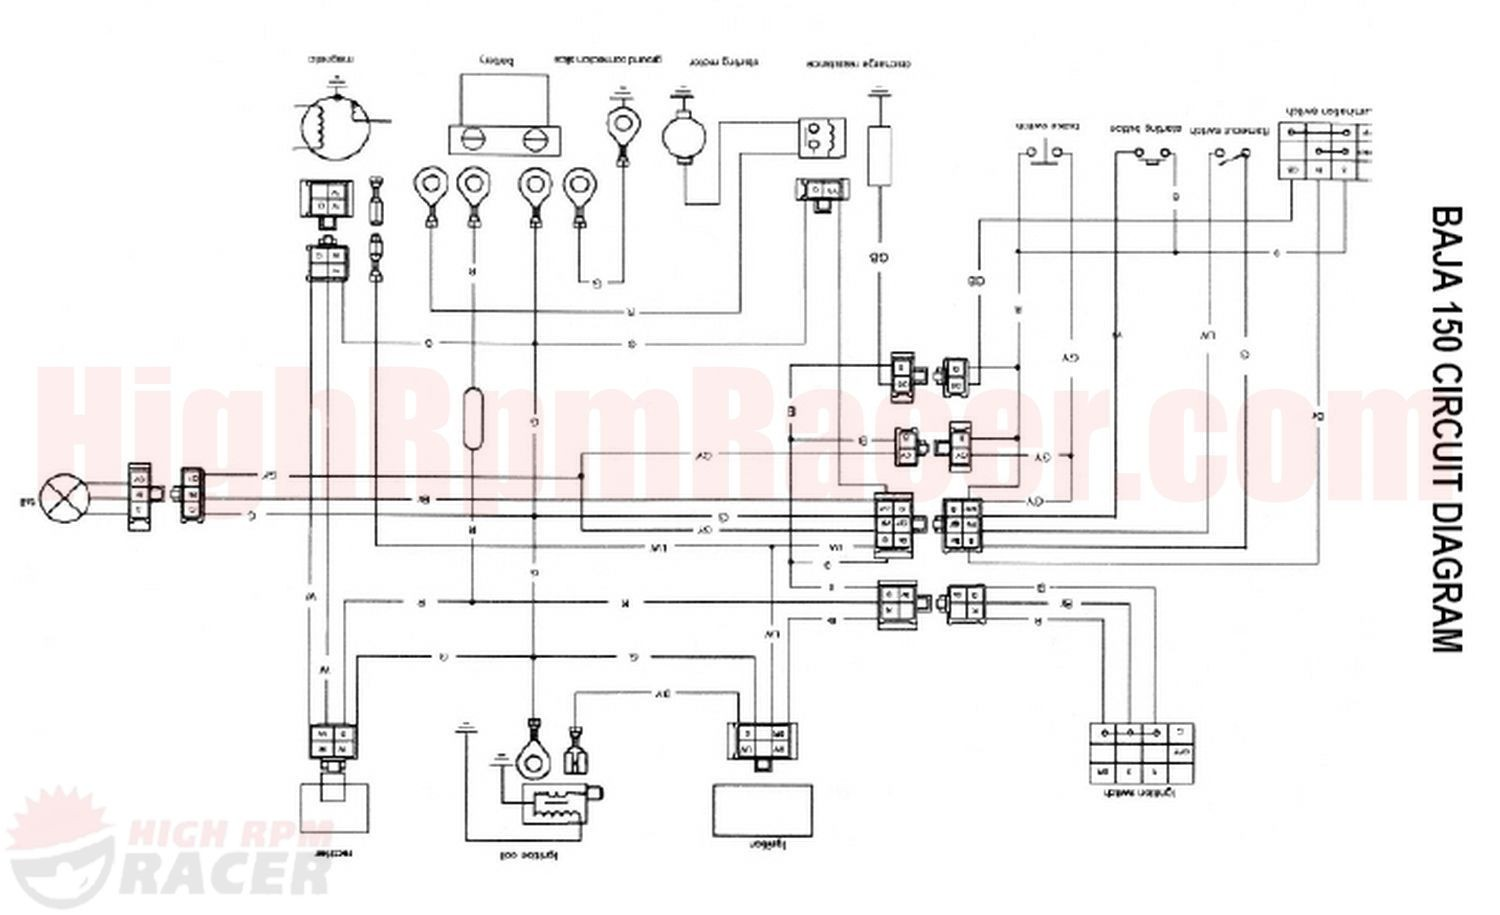 Dinli Wiring Diagram Auto Electrical Kz900 Cc Cdi Stator All Kind Of Diagrams Jetmoto